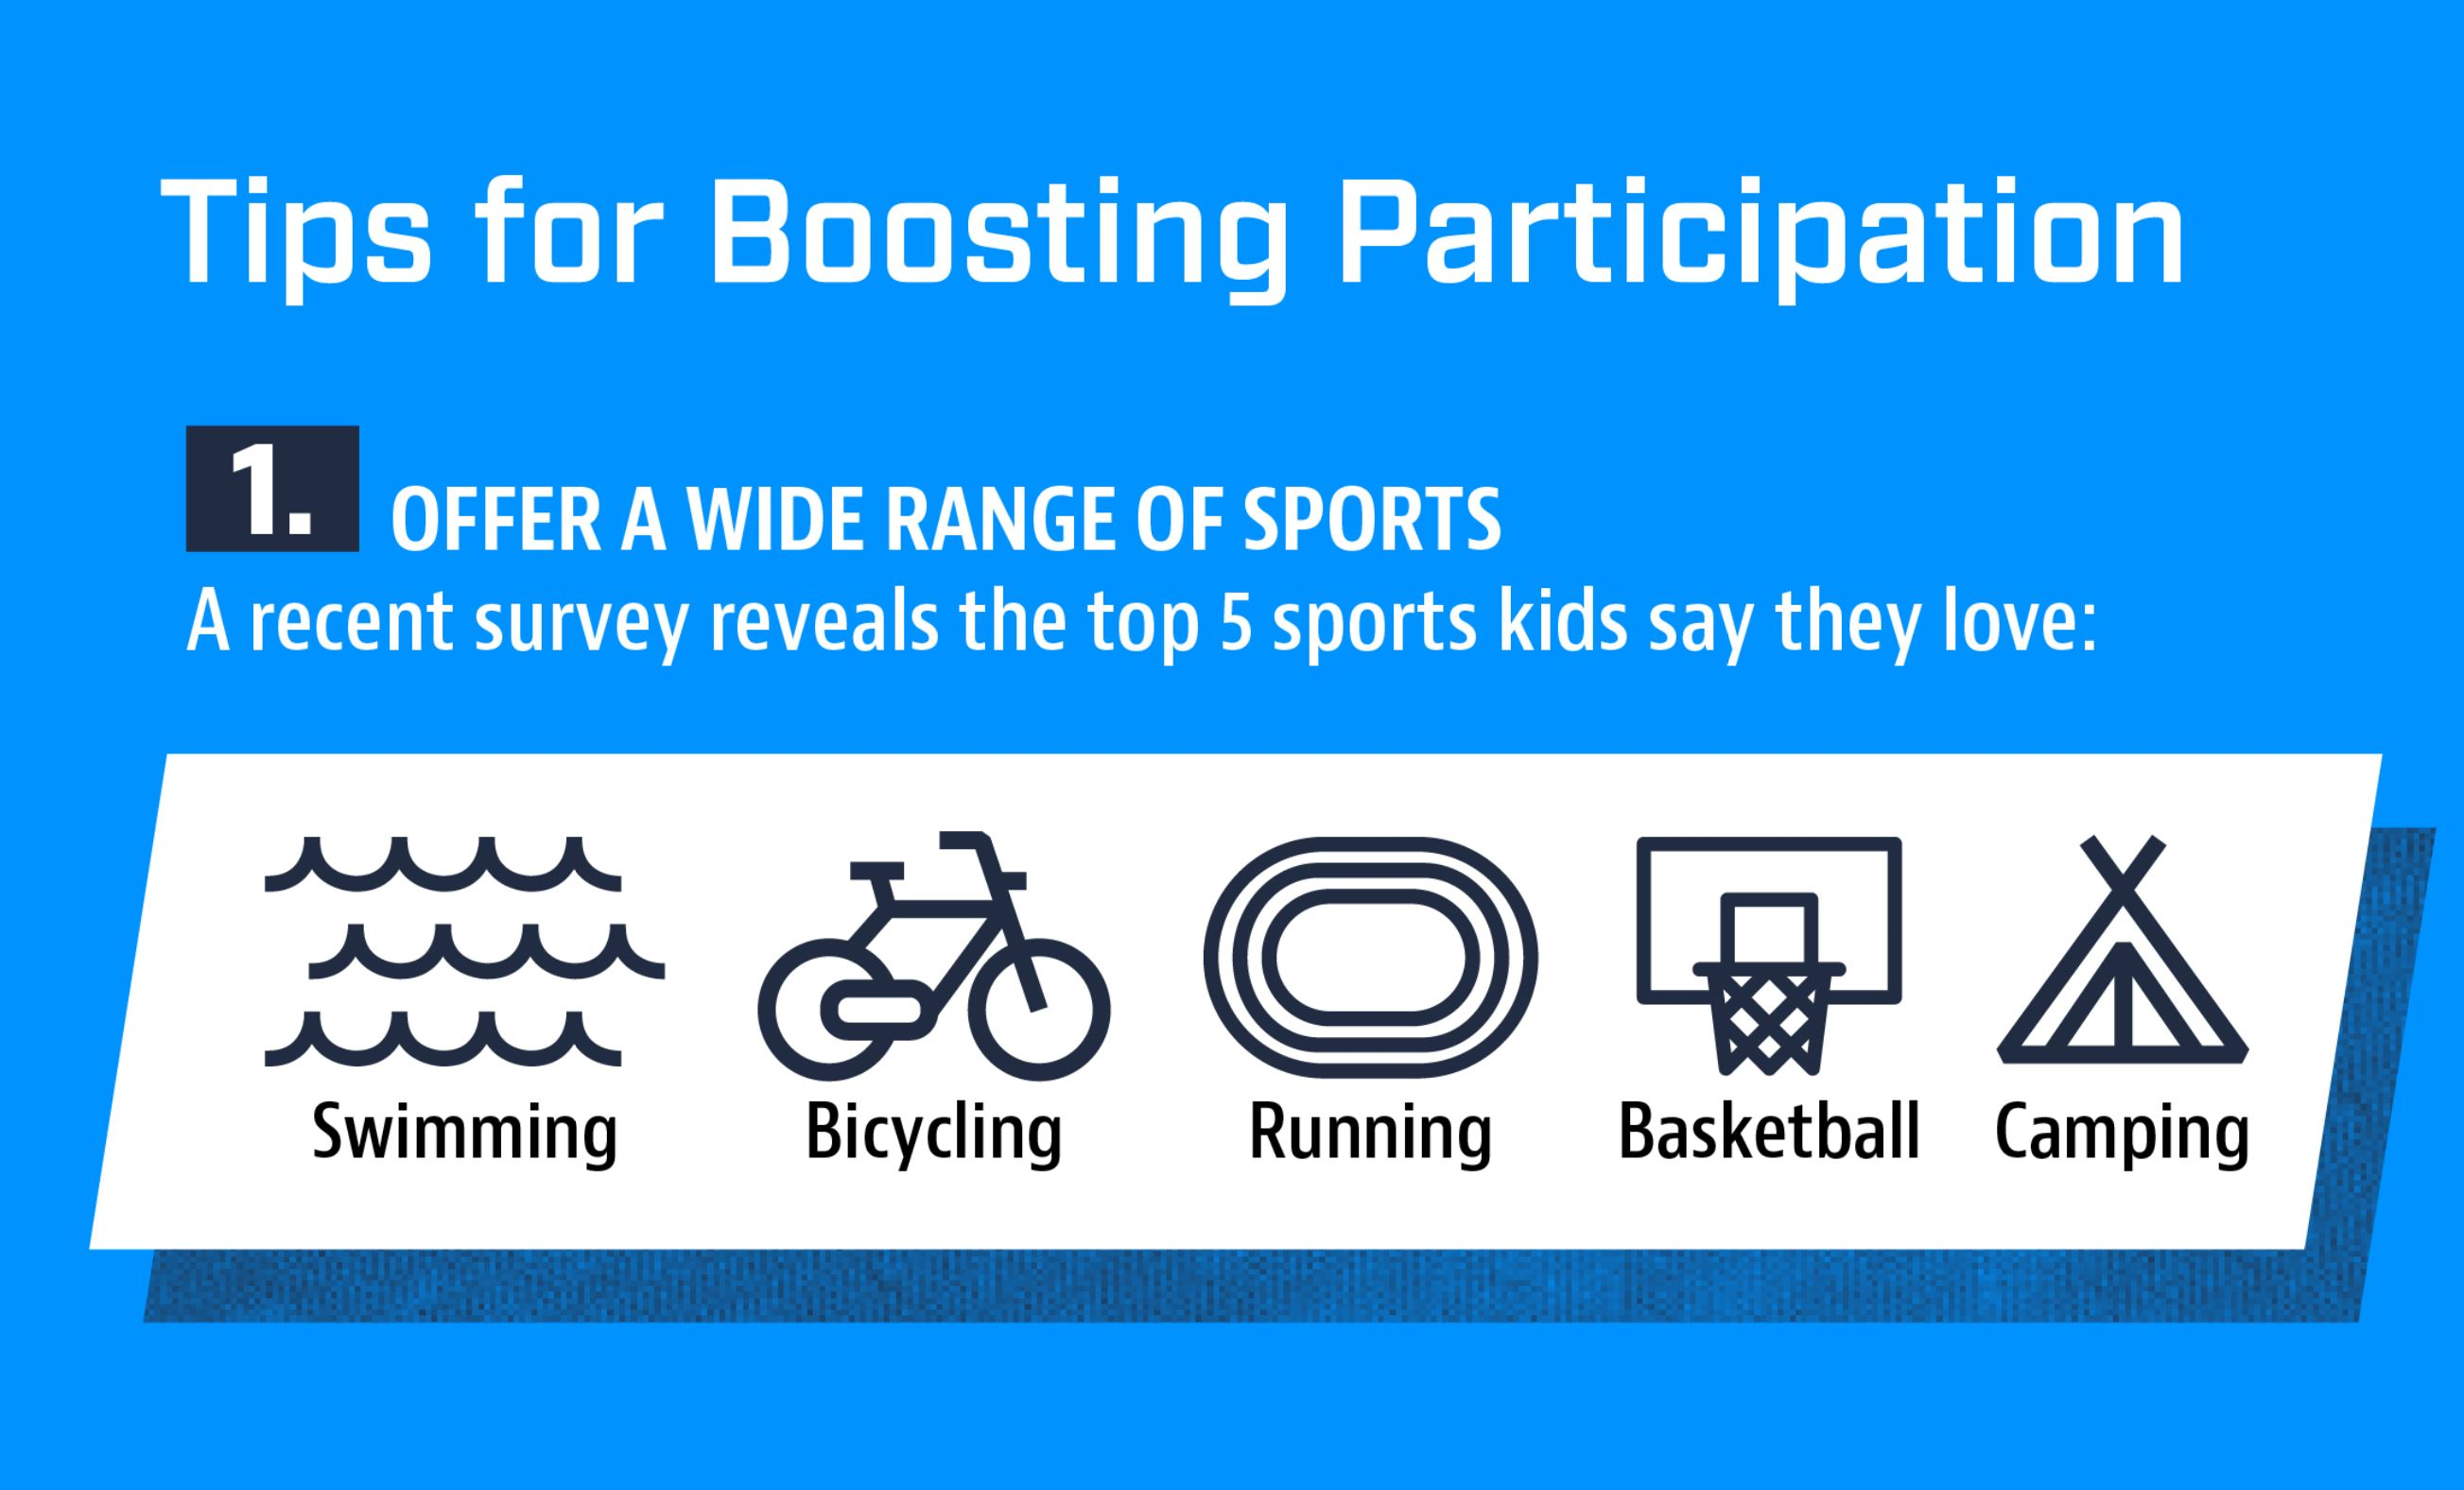 Boosting Participation in Youth Sports [+ INFOGRAPHIC]